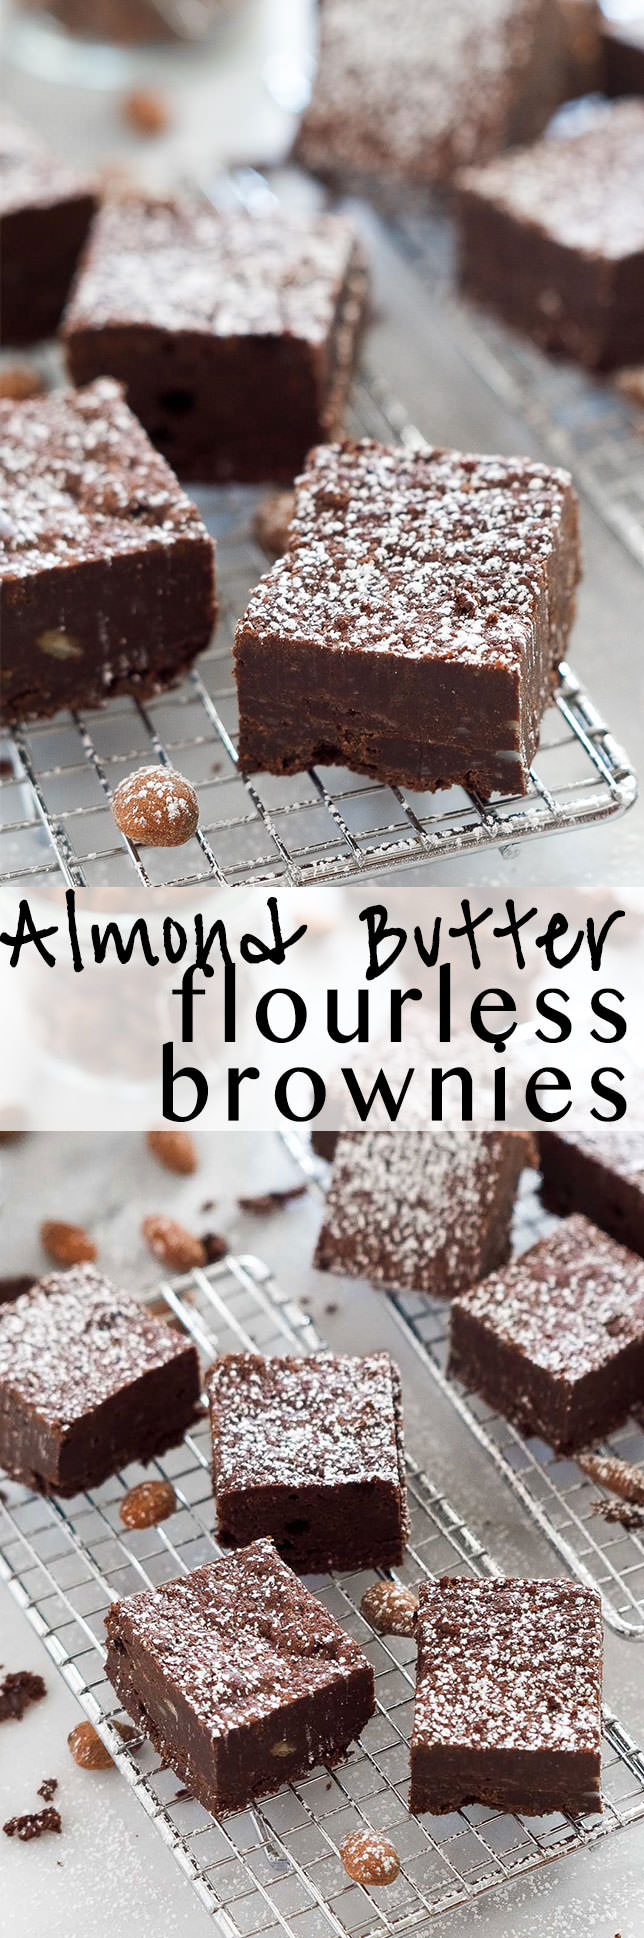 Rich and Fudgy Almond Butter Flourless Brownies are the perfect dessert that come together quickly and are lightened up with a few ingredient swaps!